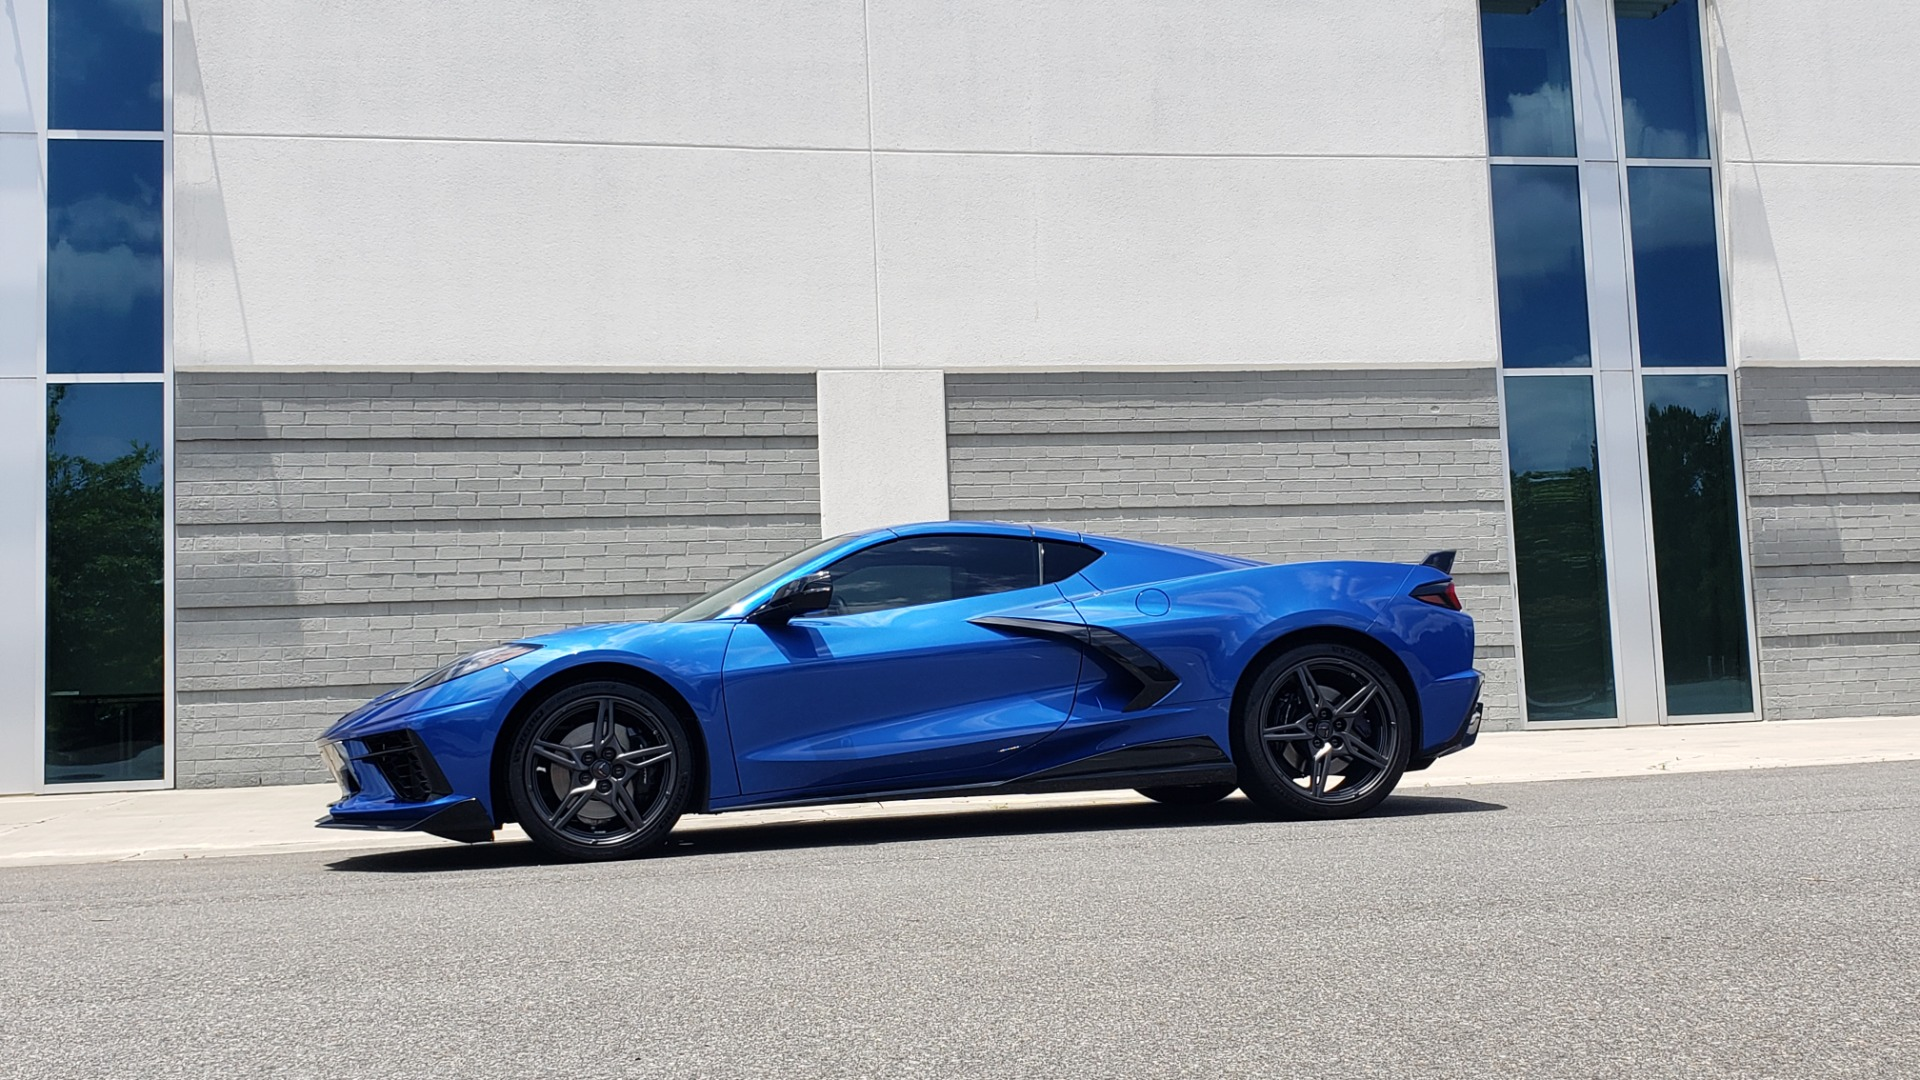 Used 2020 Chevrolet CORVETTE C8 STINGRAY COUPE 2LT / PERF & Z51 PKG / NAV / BOSE / 8-SPD AUTO / REARVIEW for sale Sold at Formula Imports in Charlotte NC 28227 4